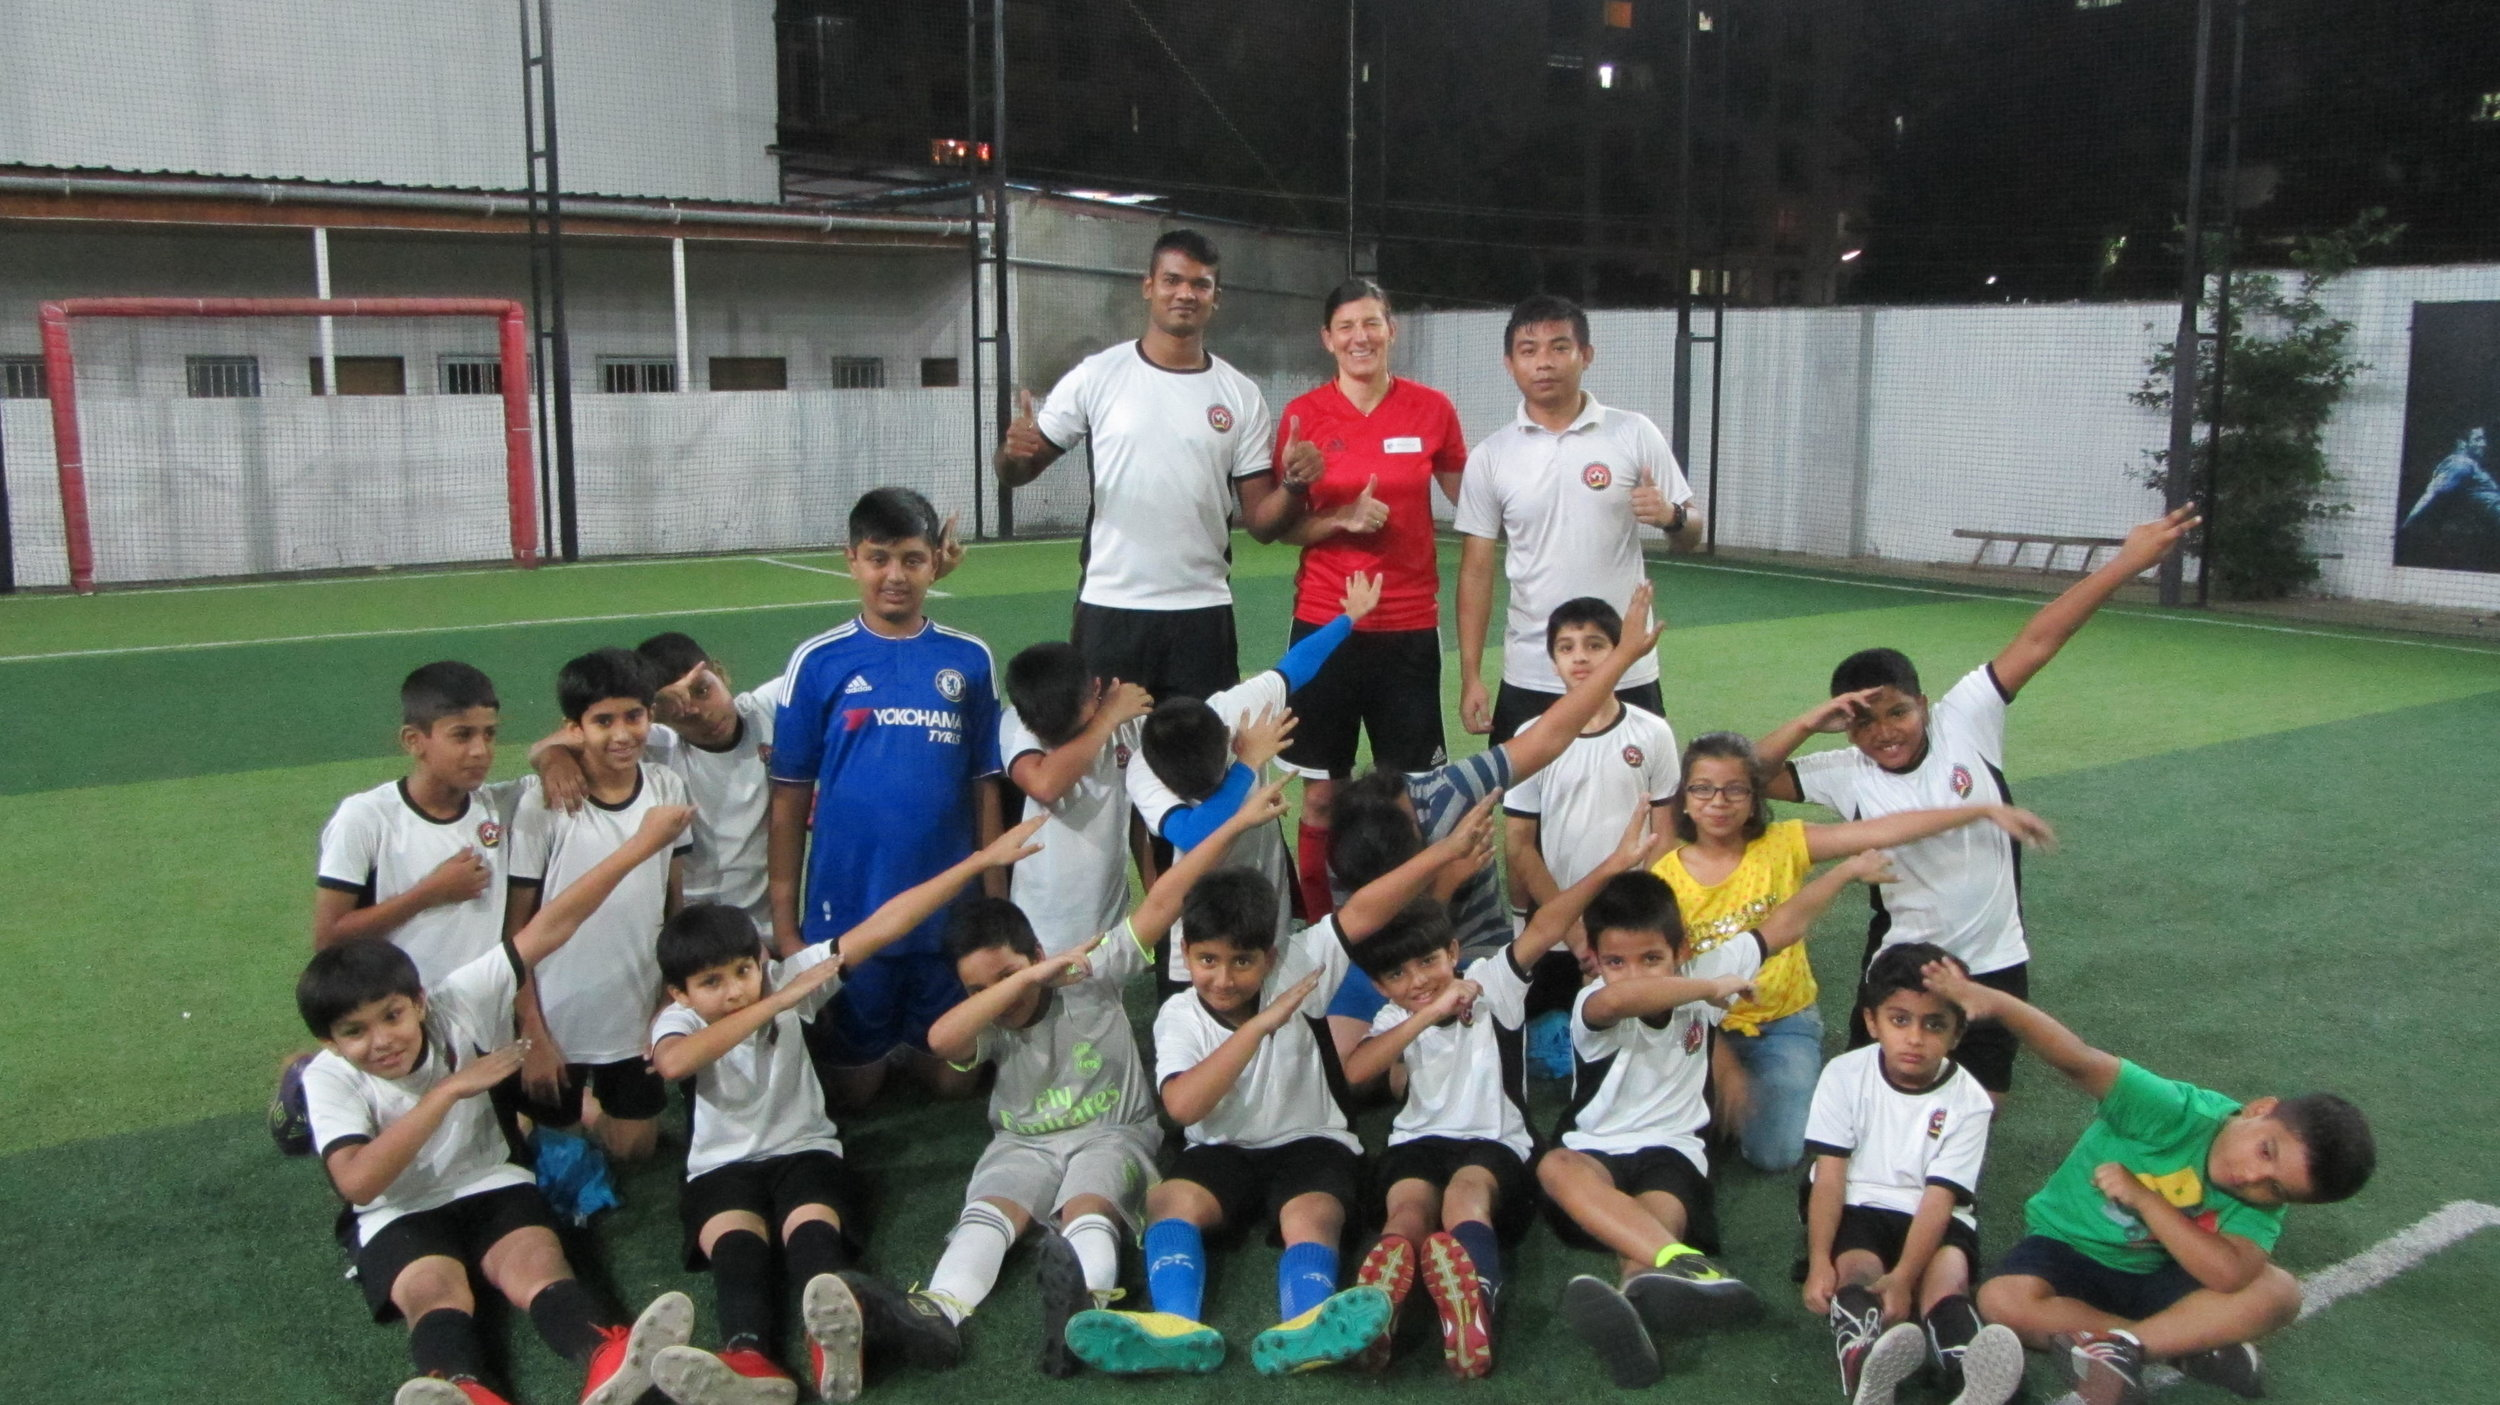 - ViCo Soccer Workshop at GFA in Pune, India